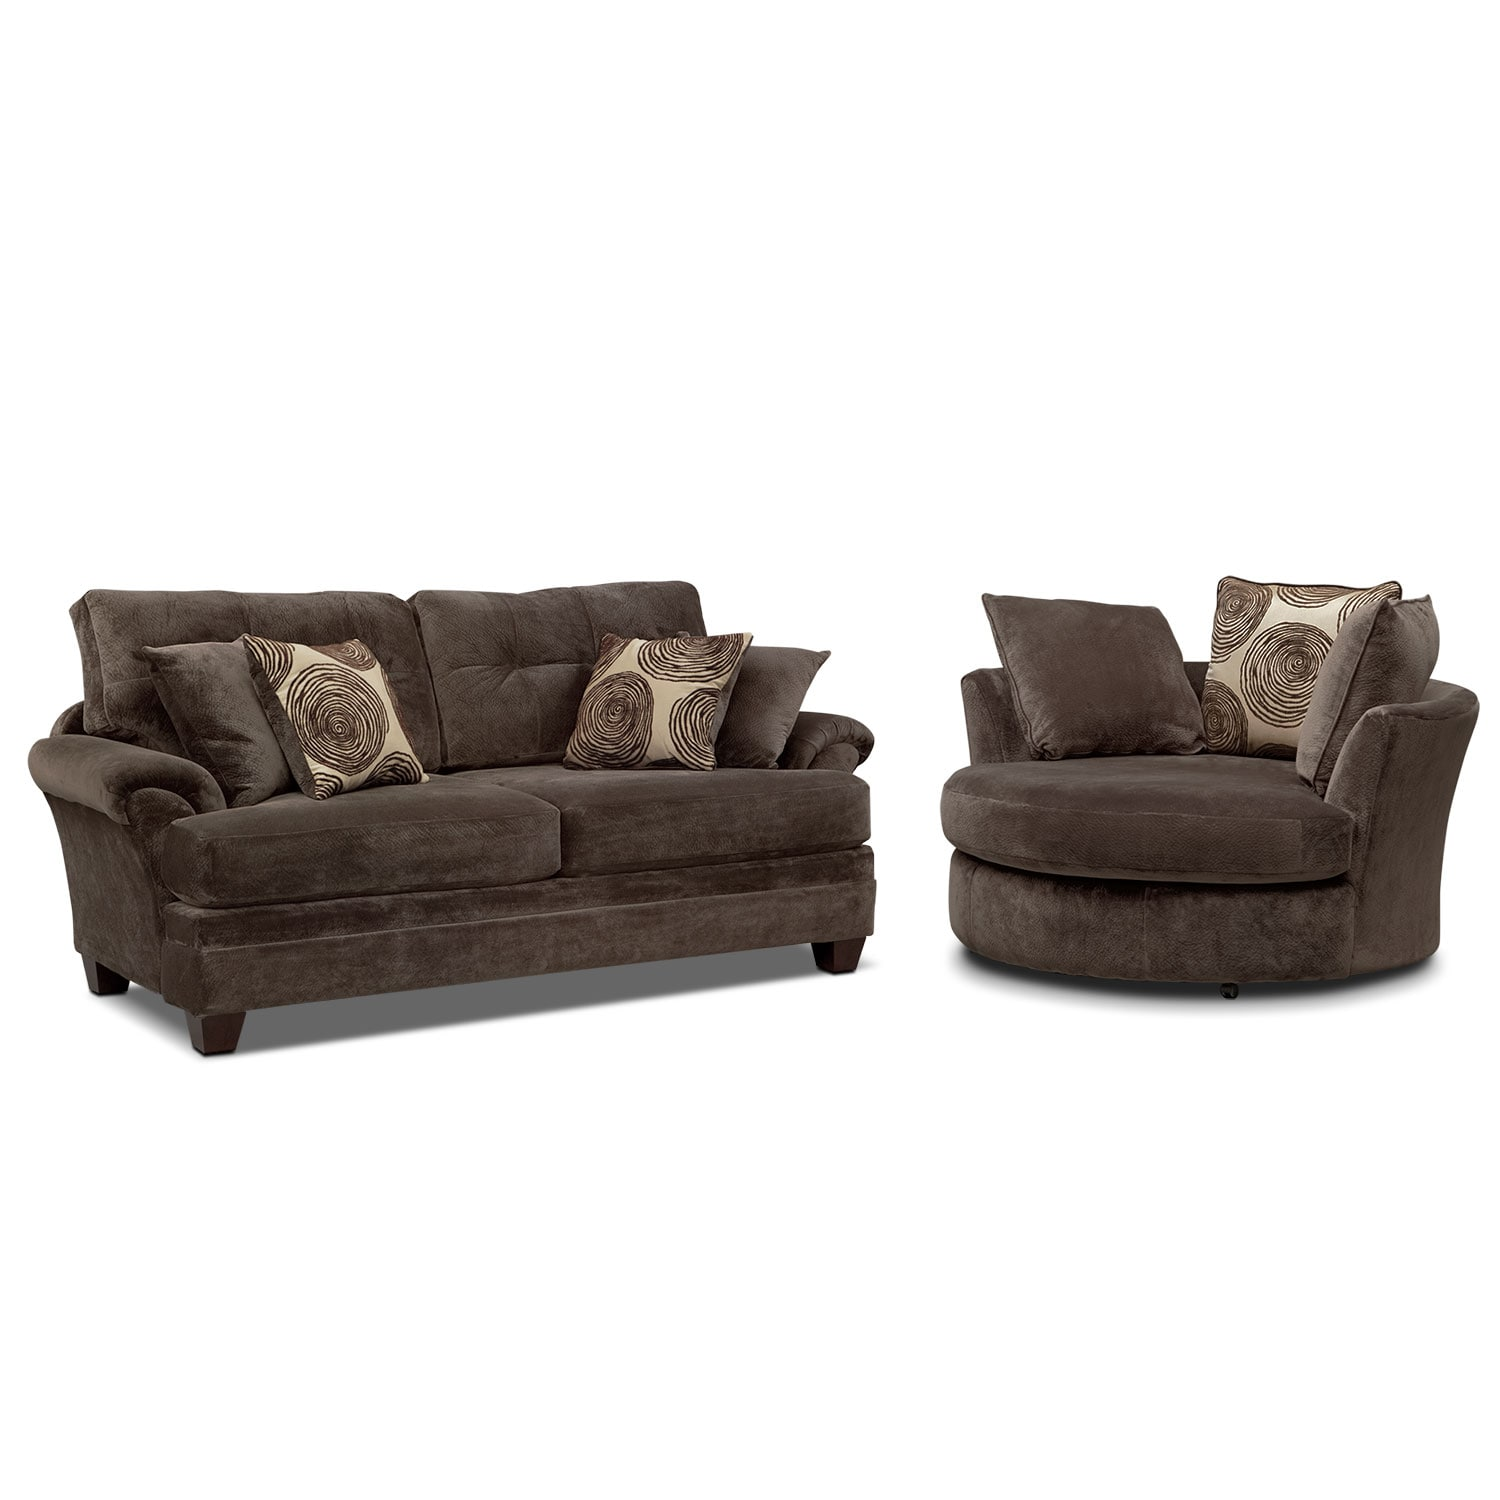 sofa and chair set Cordelle Sofa and Swivel Chair Set   Chocolate | American  sofa and chair set